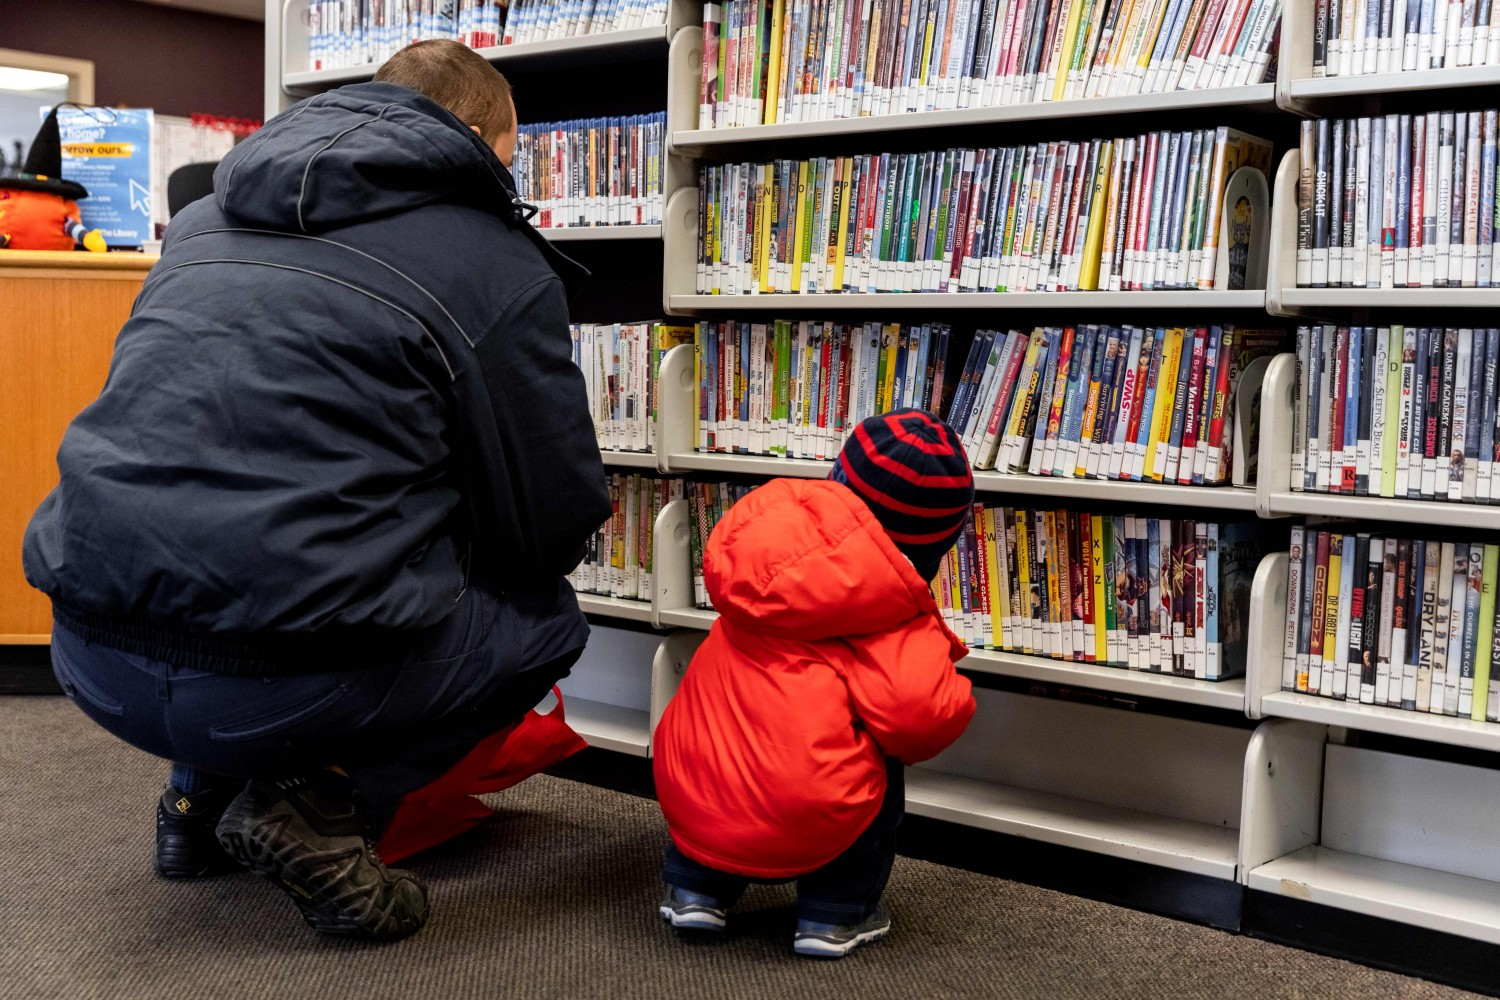 E-readership and other downloadable content vault Mississauga's 'virtual library' into the digital future